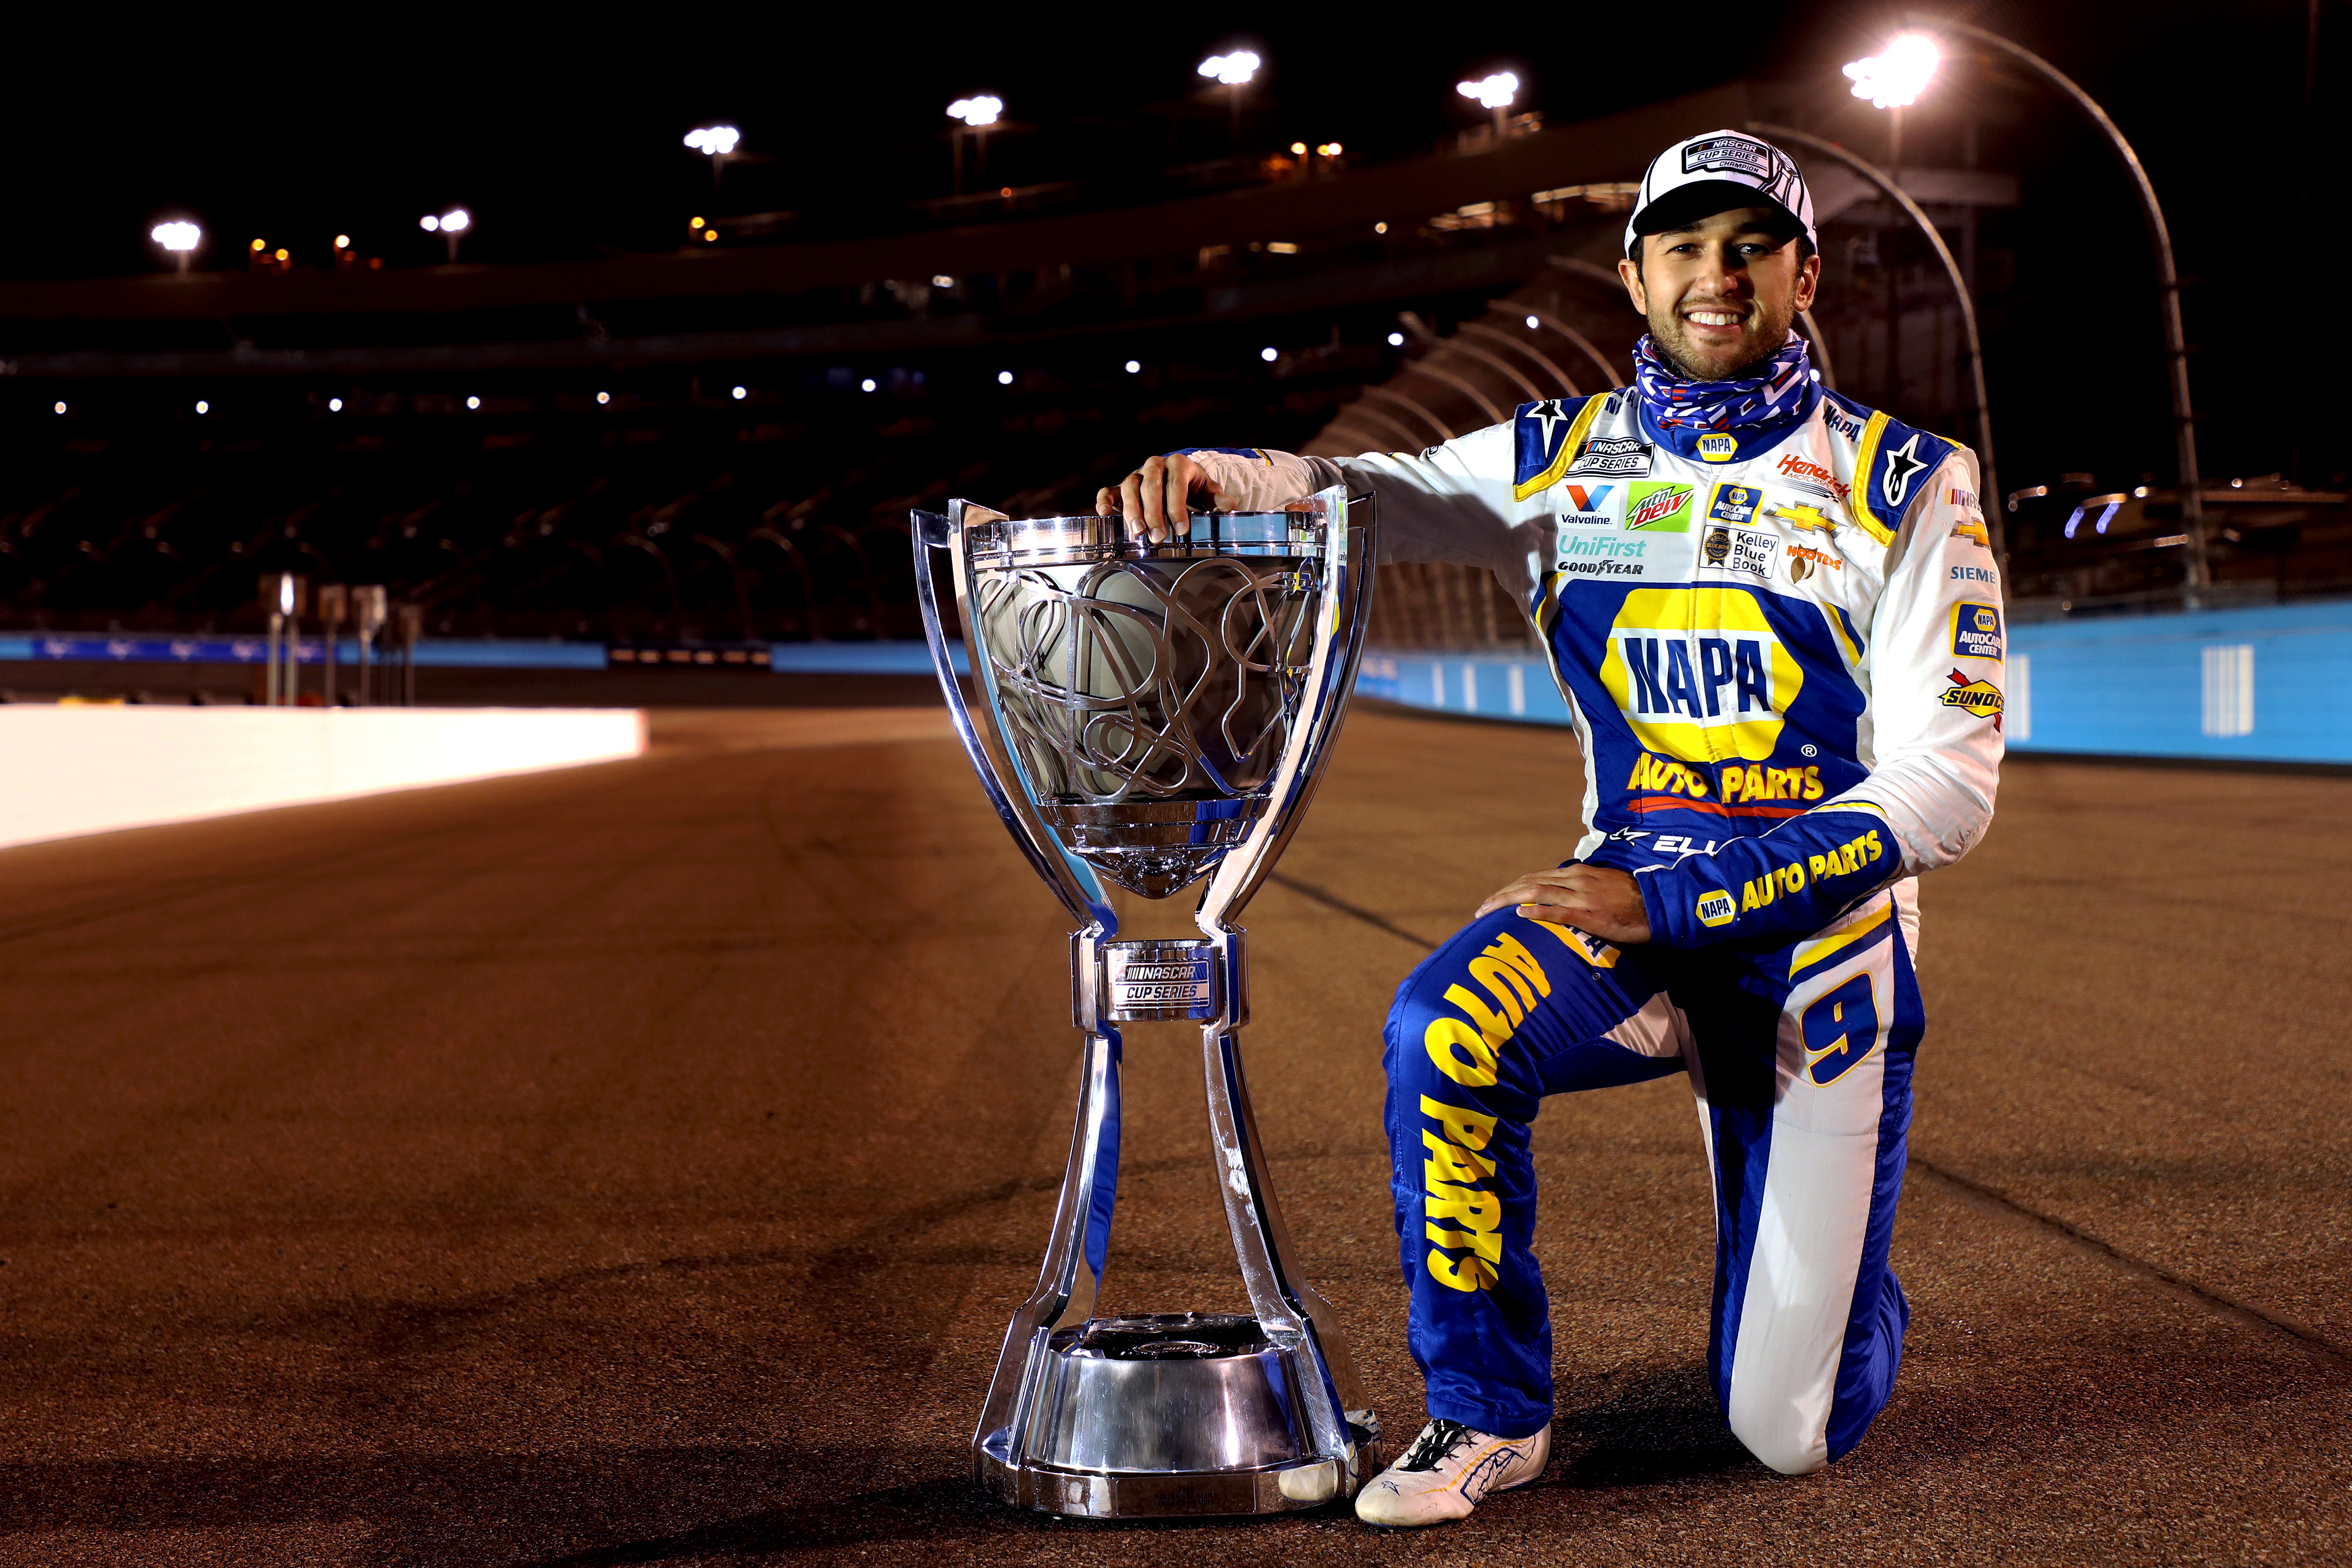 2020 NASCAR Cup Series Champion Chase Elliott